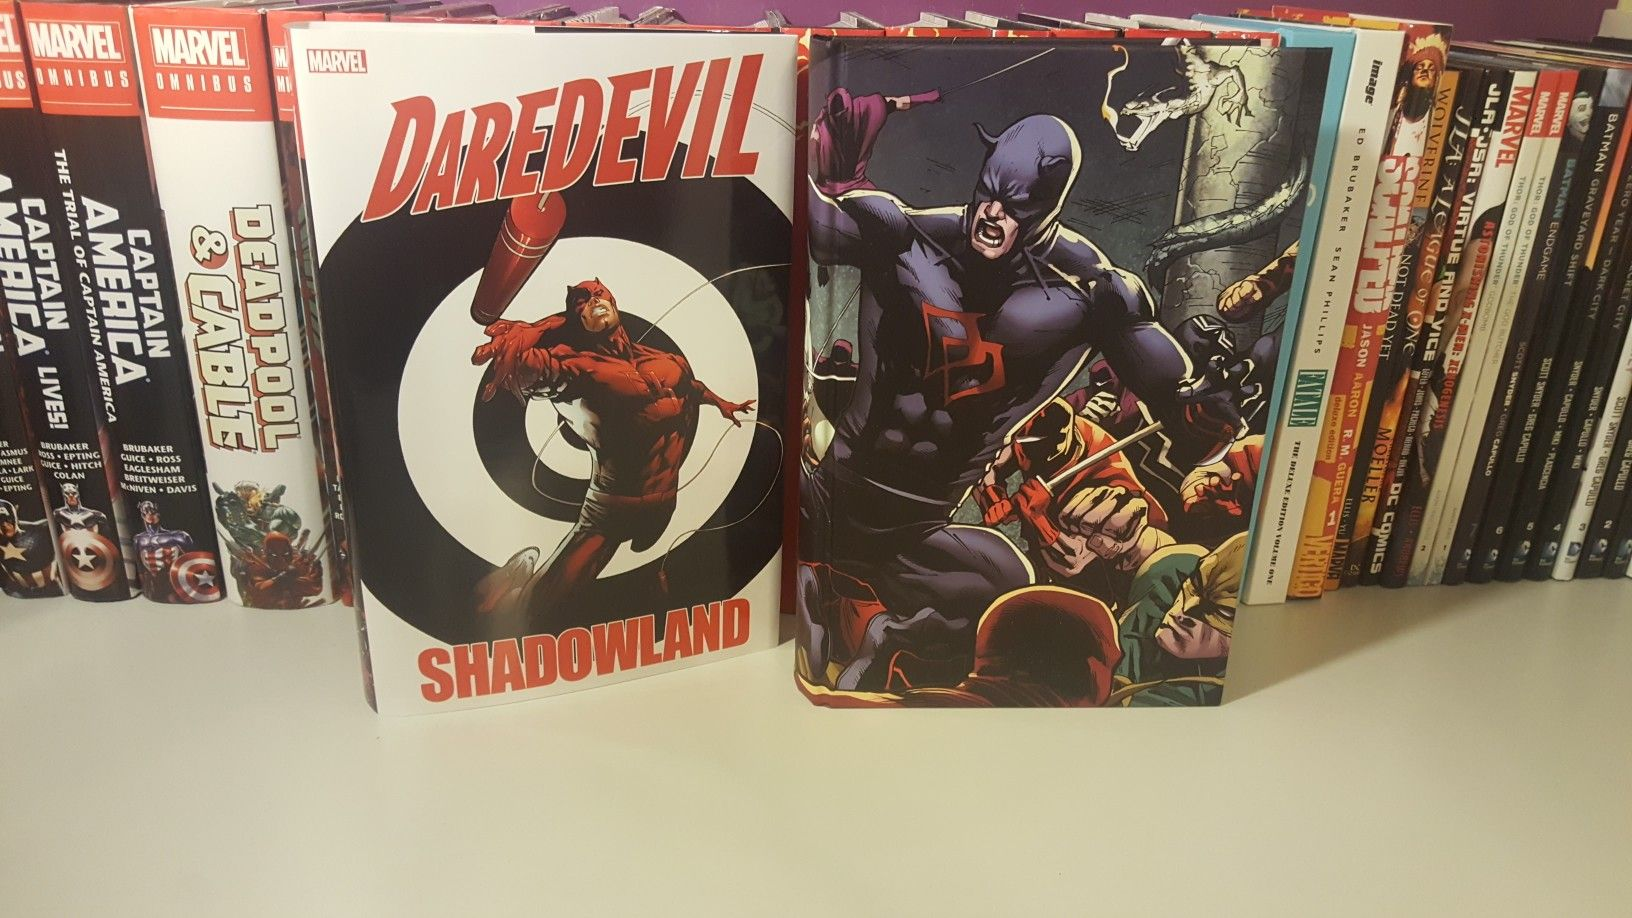 Daredevil Shadowland Omnibus Overview Video Https M Youtube Com